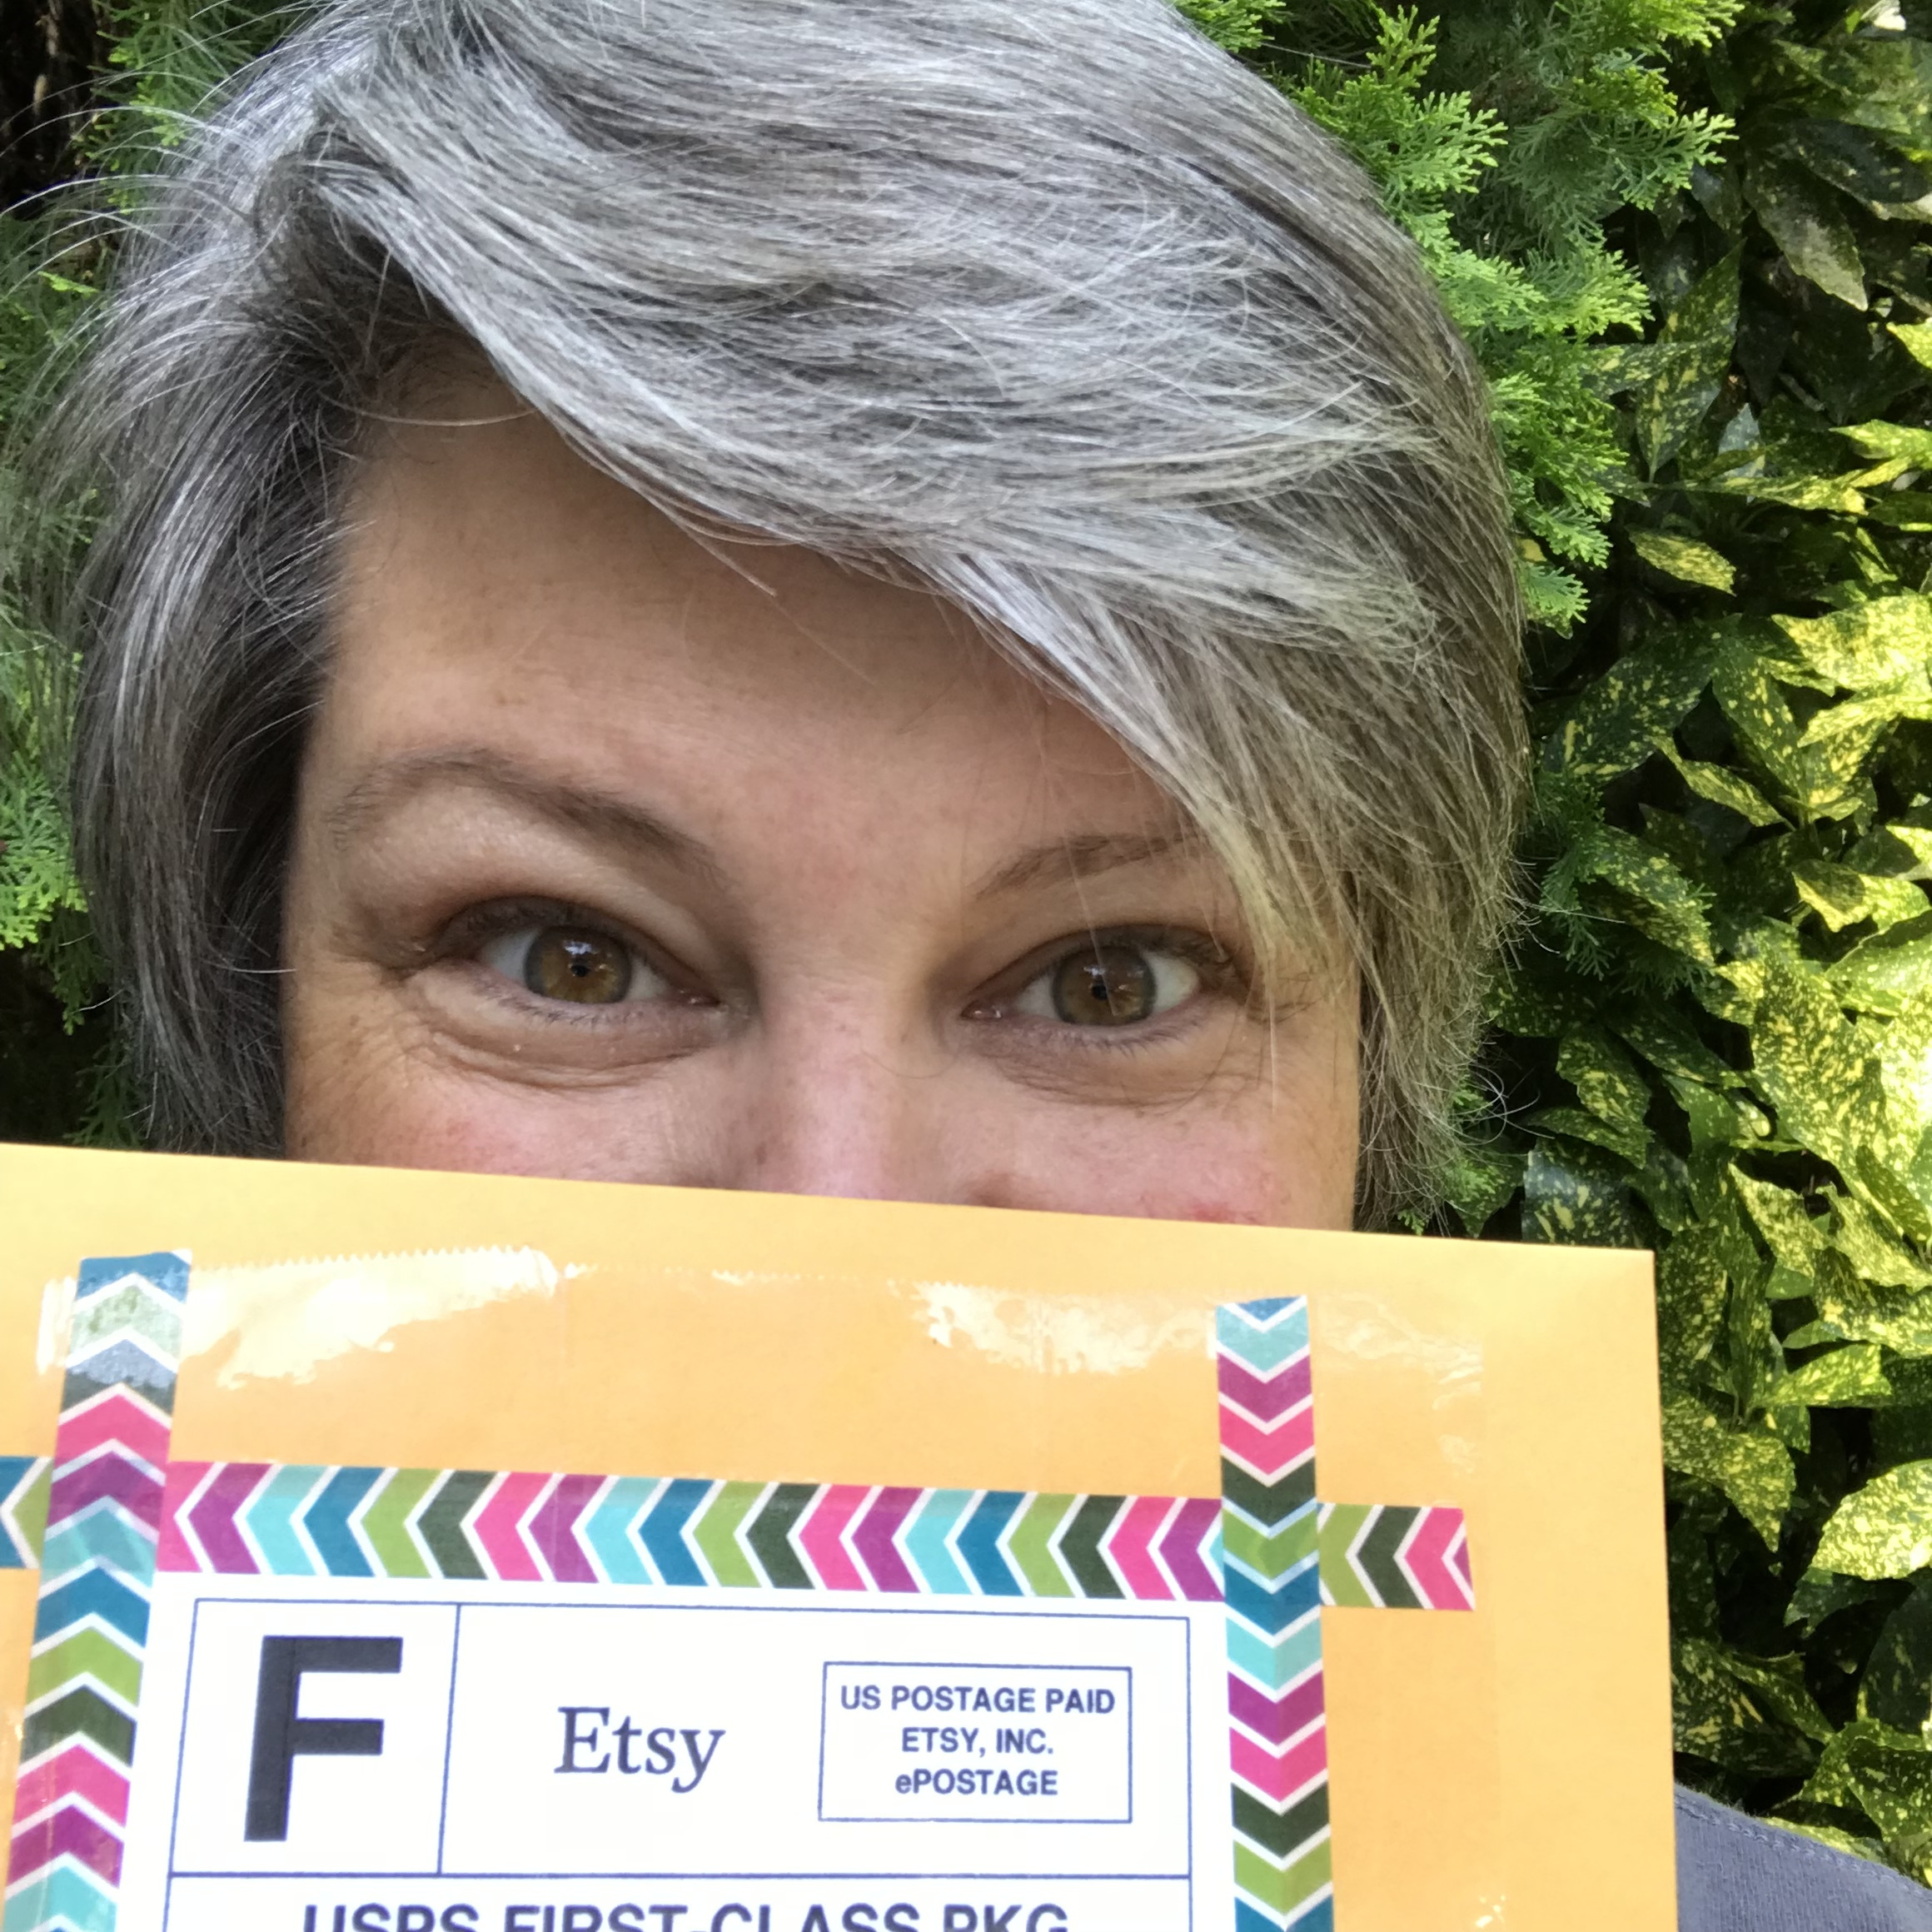 Messy hair and baggy eyes, don't care! I was happy to take this sweet package to the post office today!